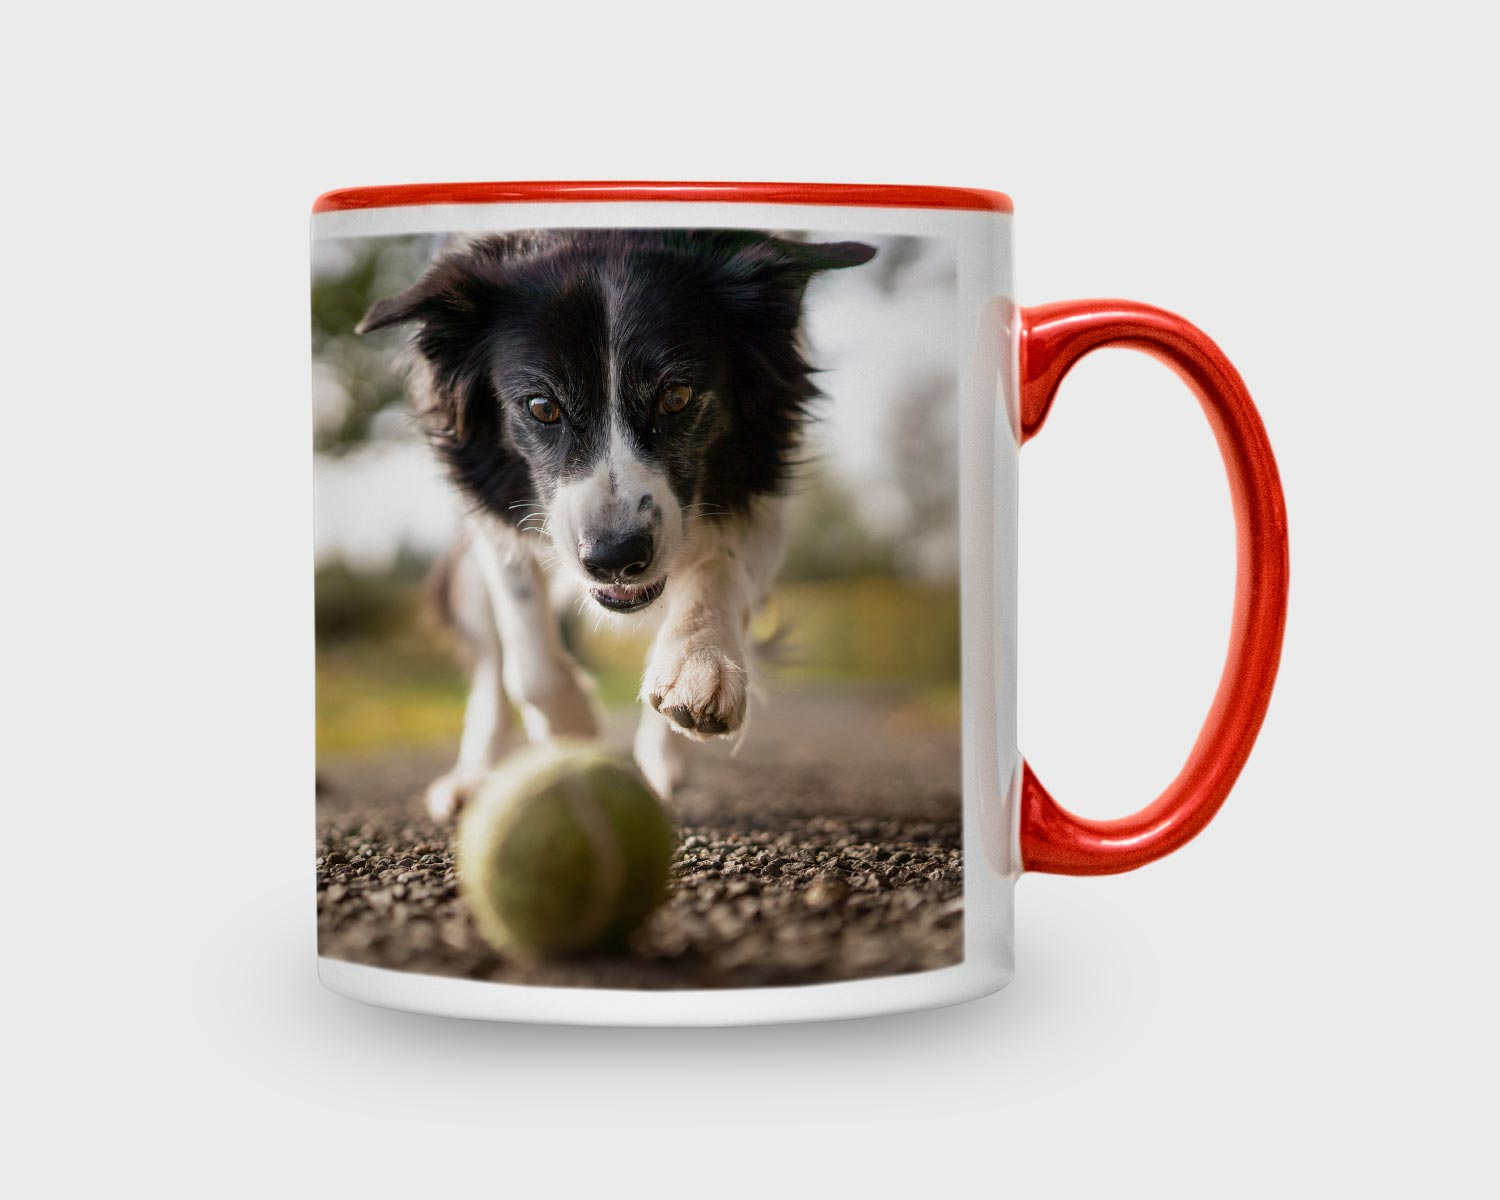 Red inner ceramic photo mug